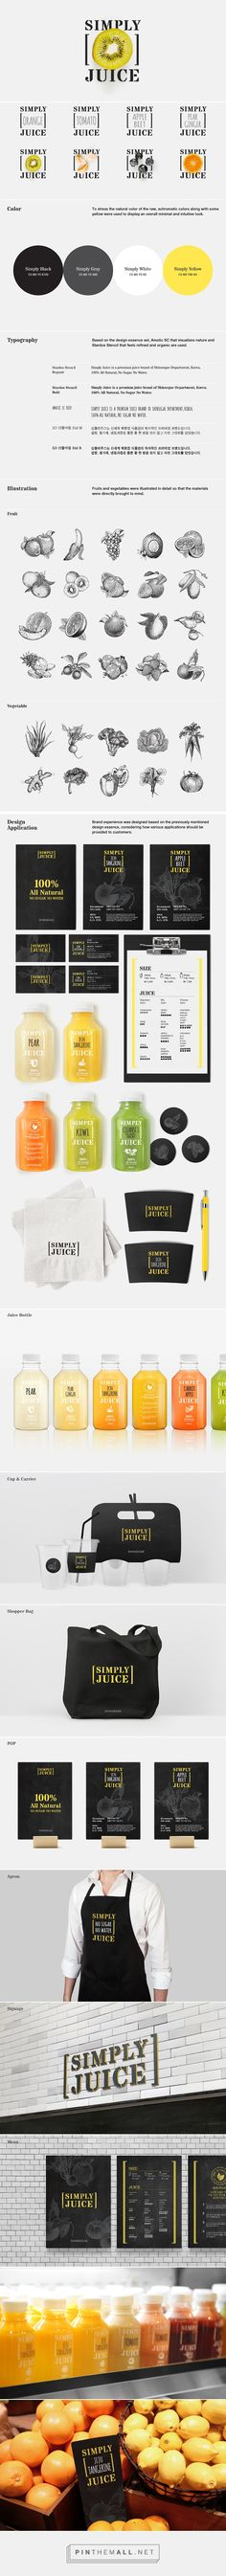 SHINSEGAE Simply Juice branding packaging eXperience Design on Branding Served curated by Packaging Diva PD. Love this idea